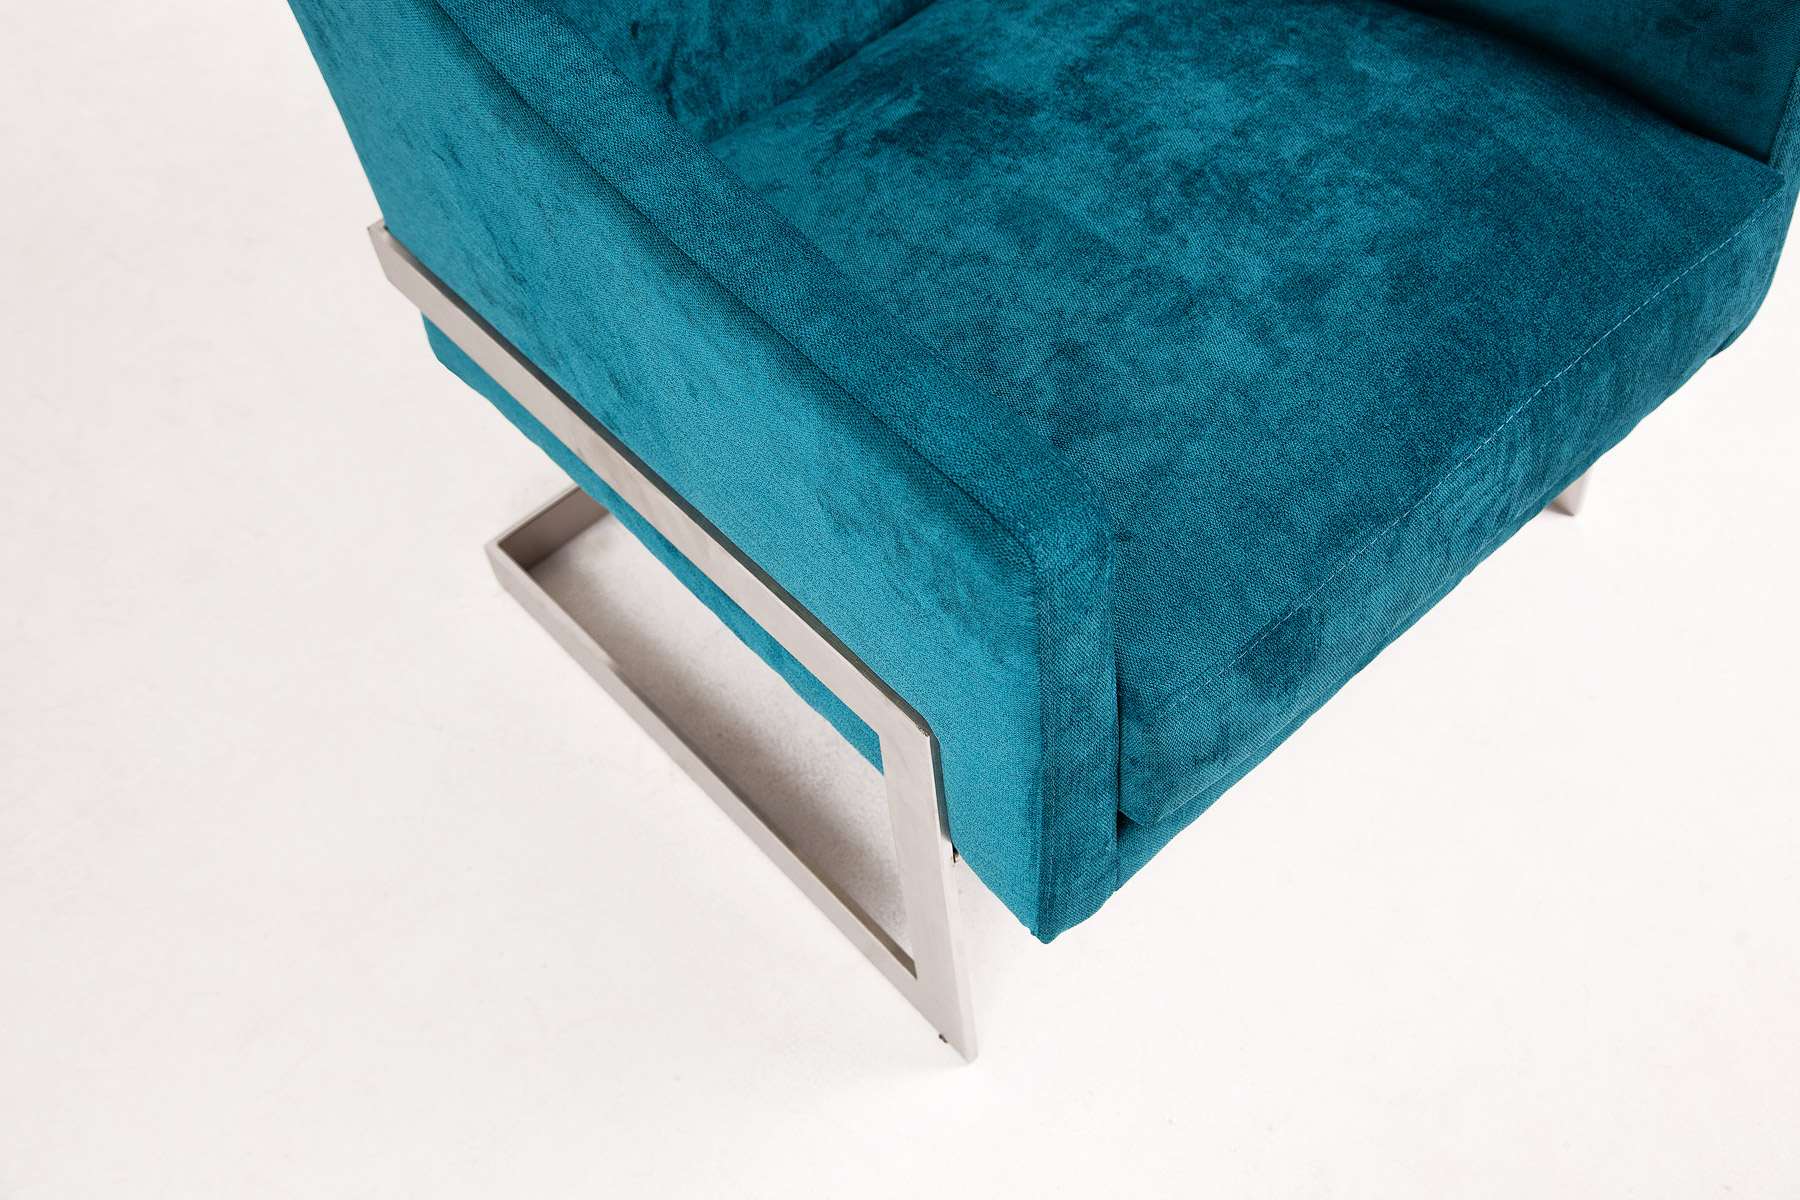 Ultra stylish blue armchair in modern design and steel legs size 69/70/77cm by Urvission Interiors price £749